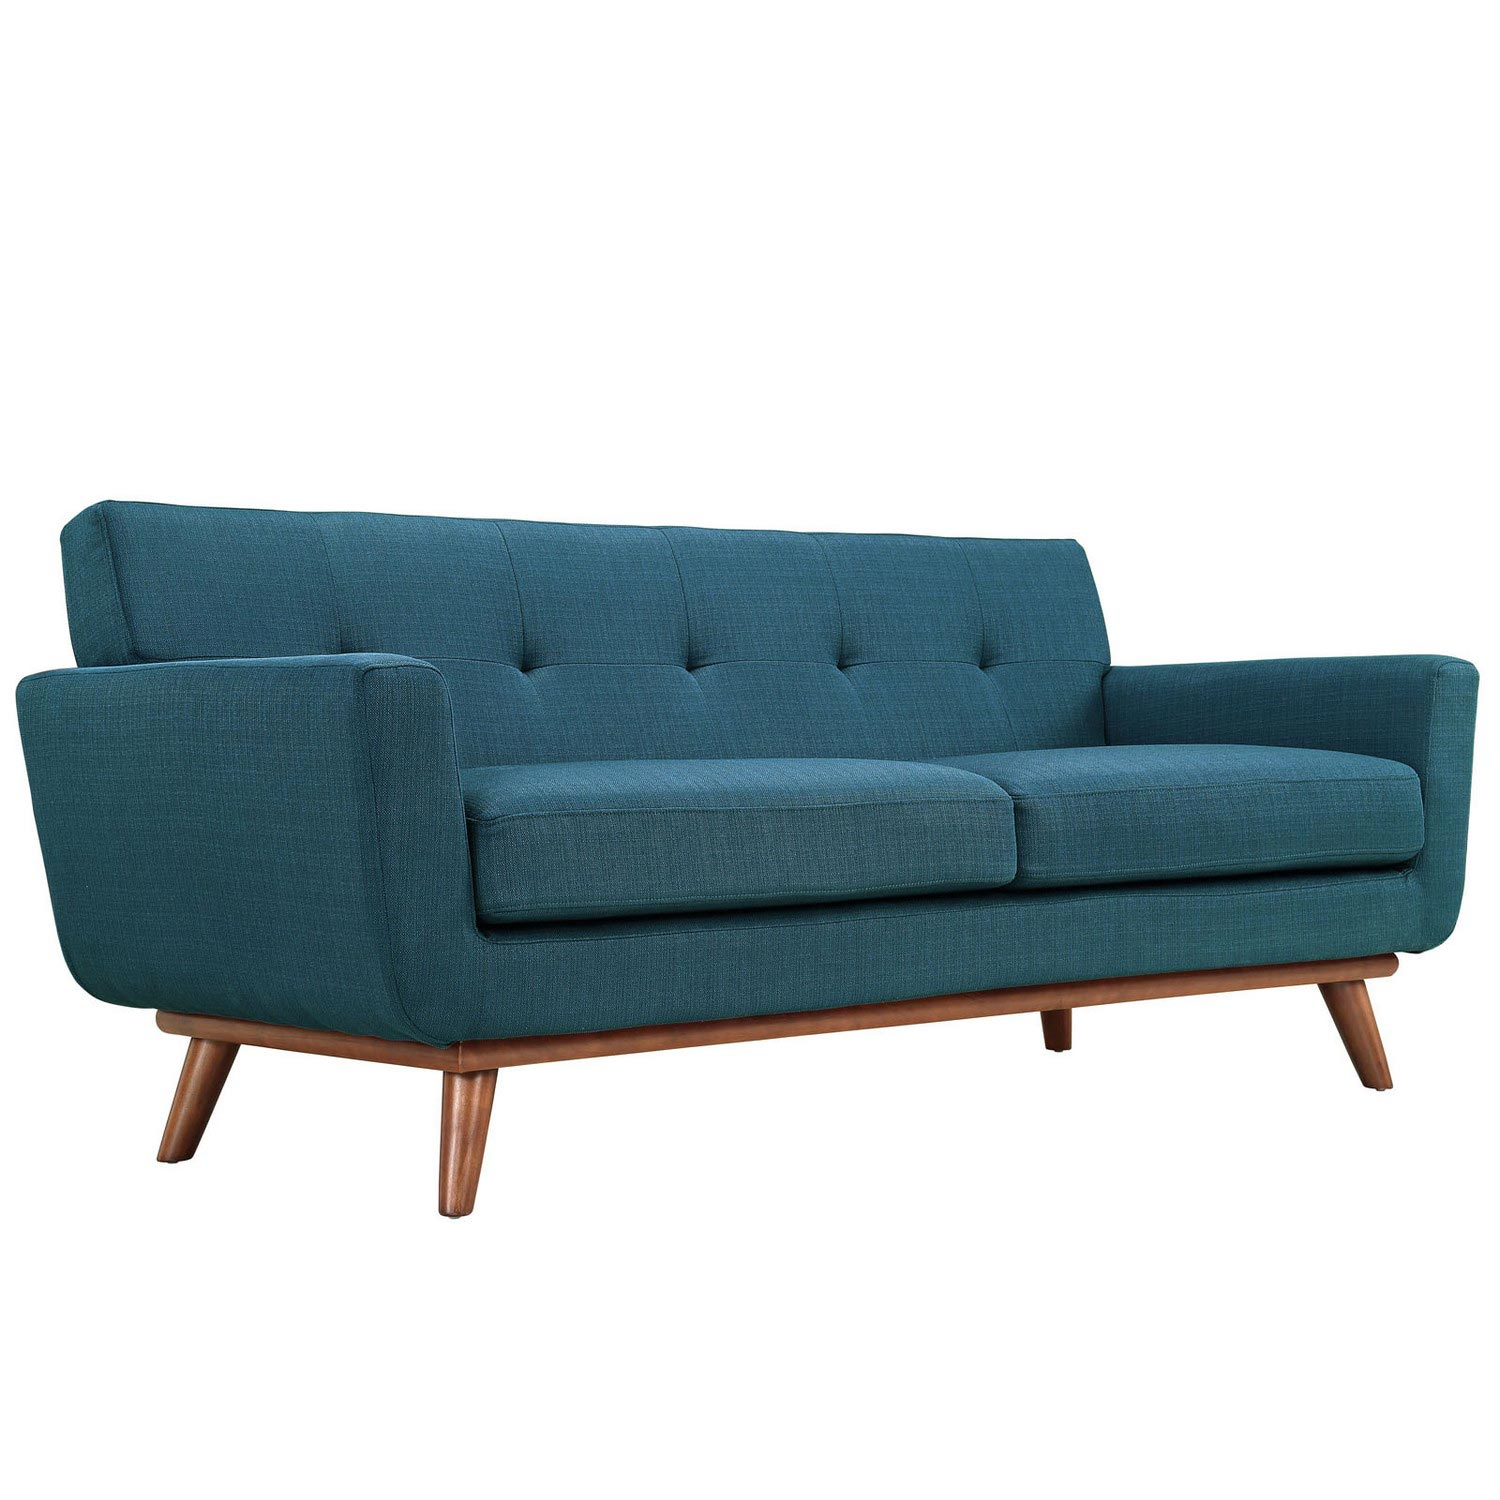 Modway Engage 3 PC Sofa Loveseat and Armchair Set - Azure